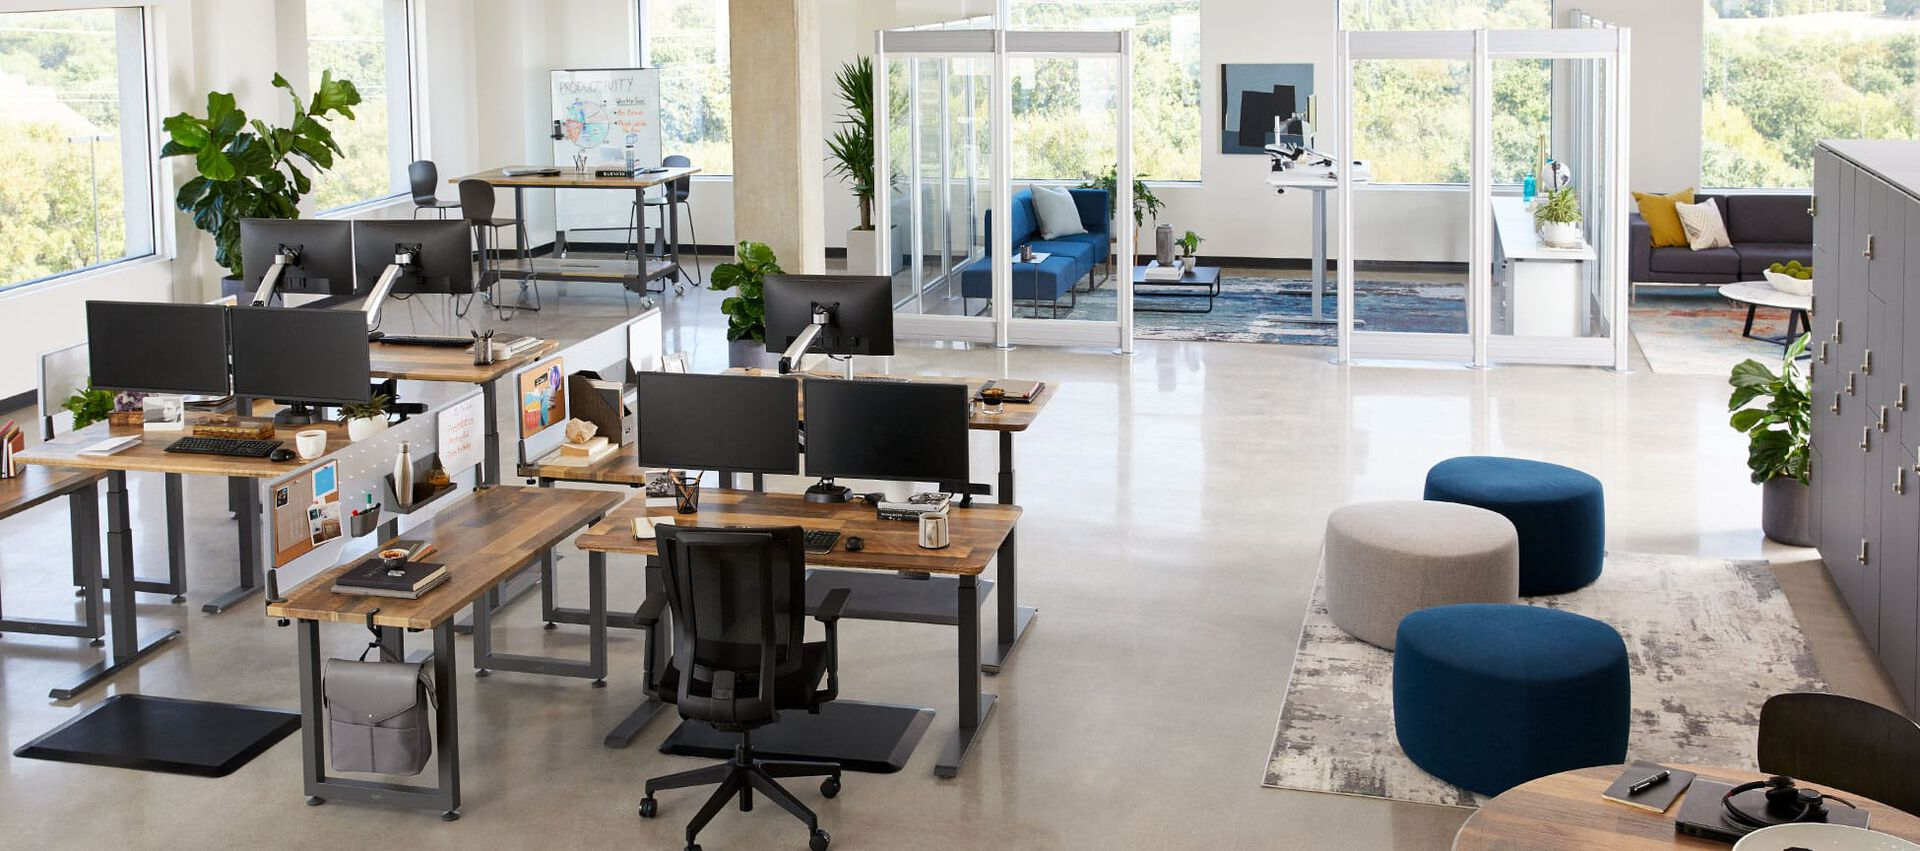 open office layout of vari products